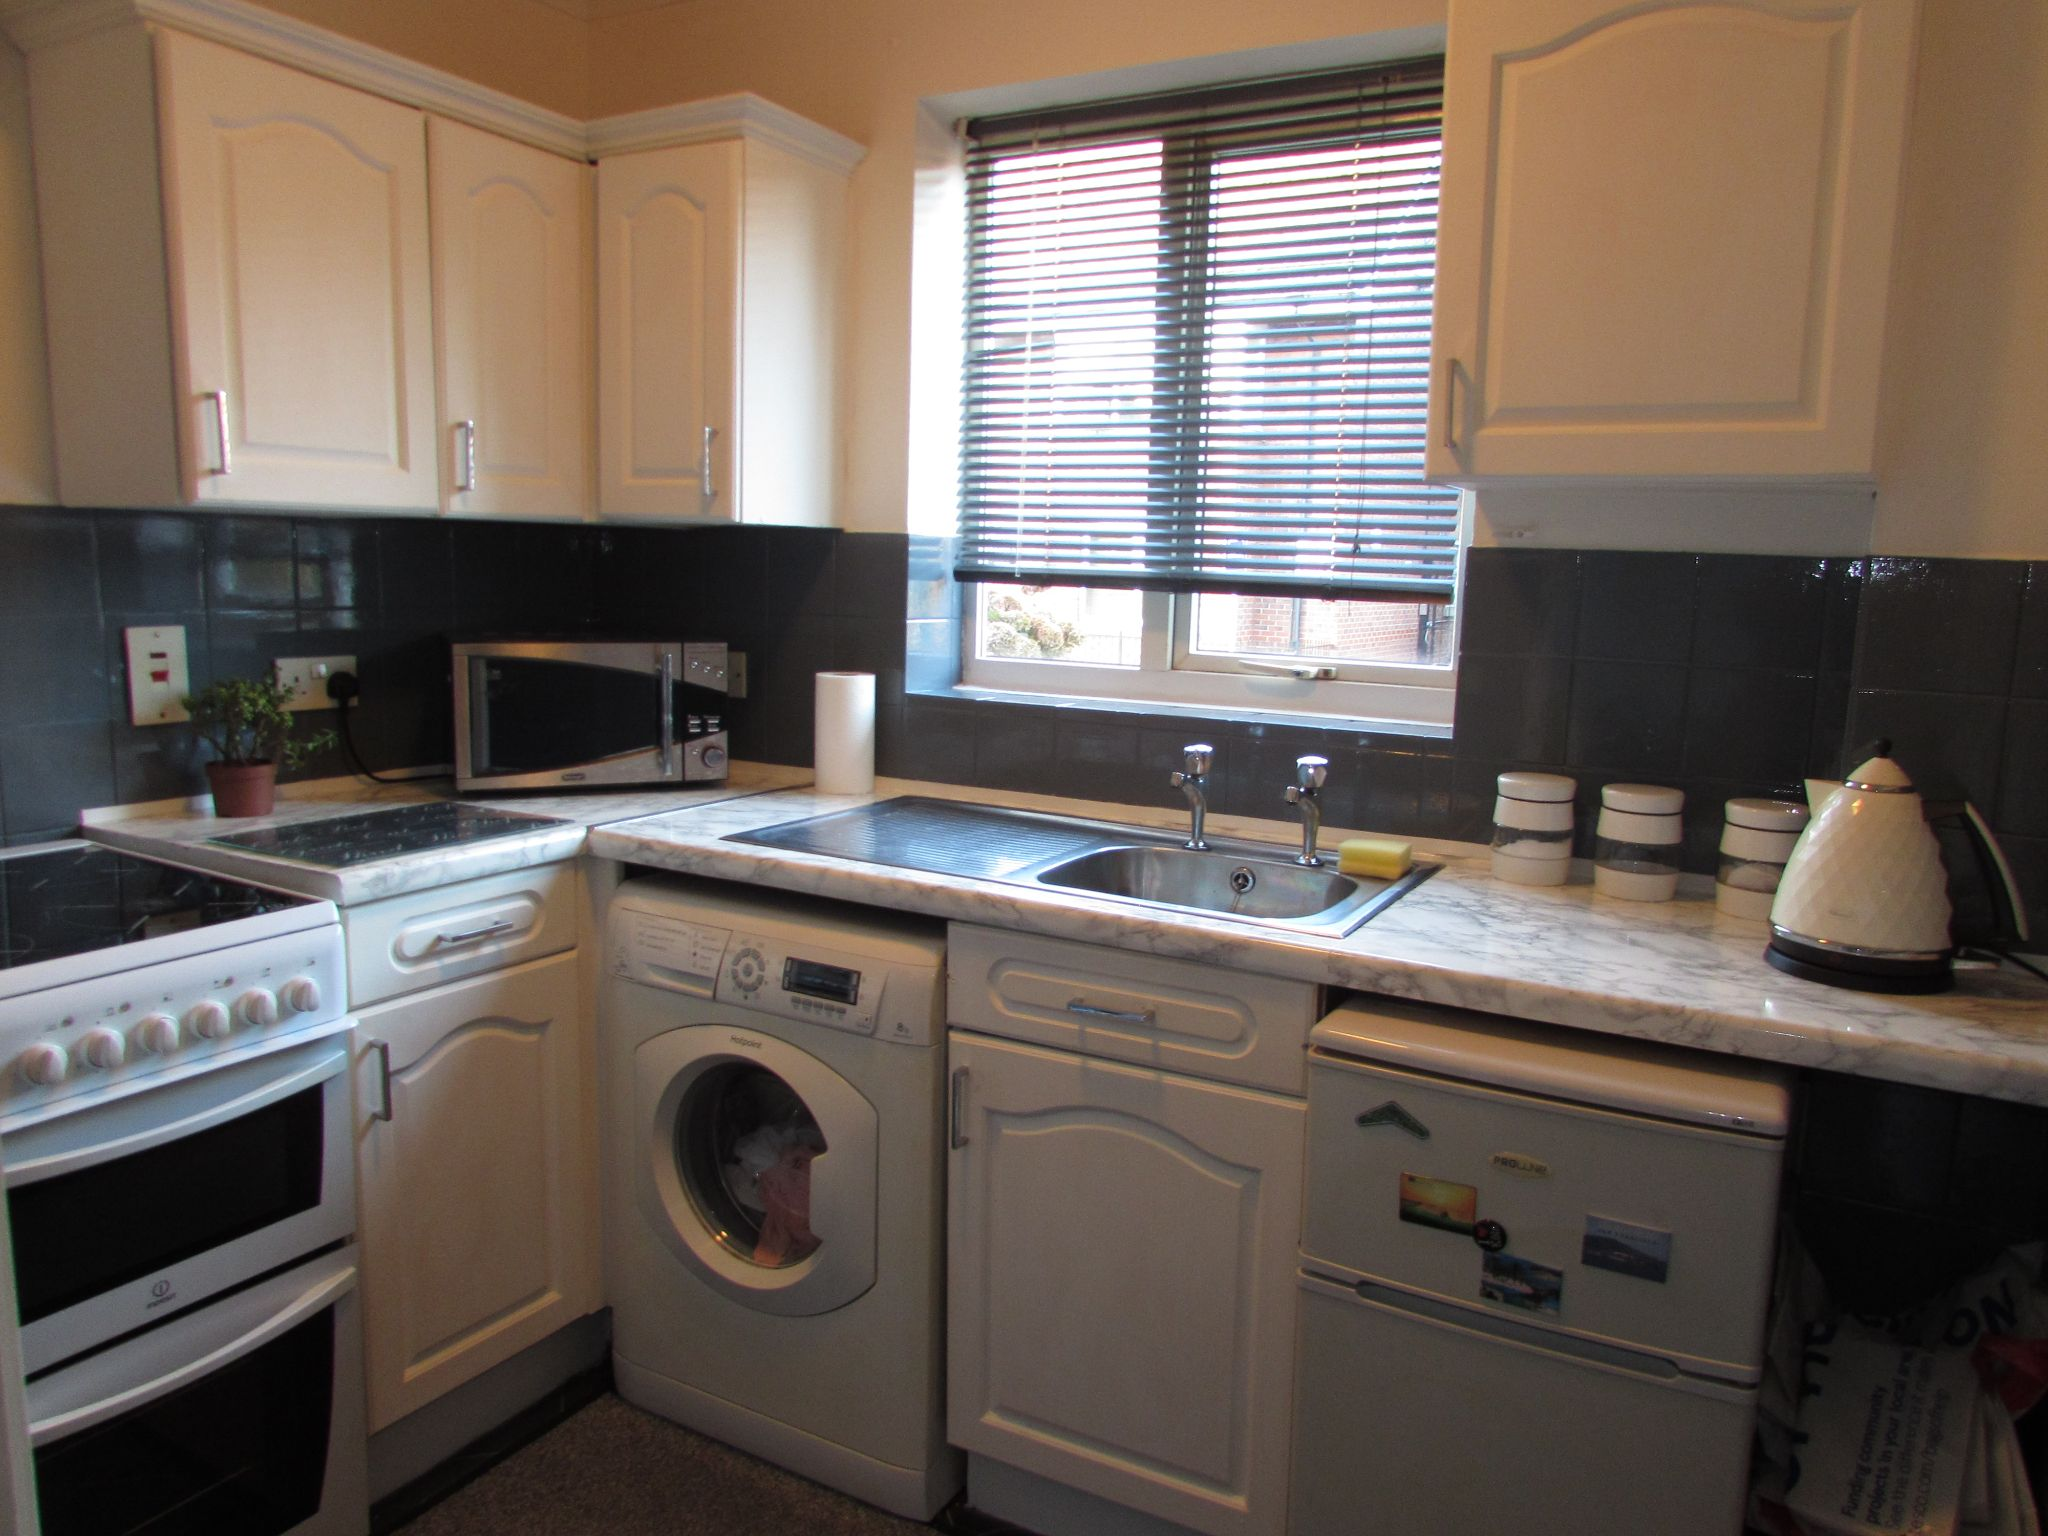 1 Bedroom Ground Floor Flat/apartment For Sale - Photograph 5